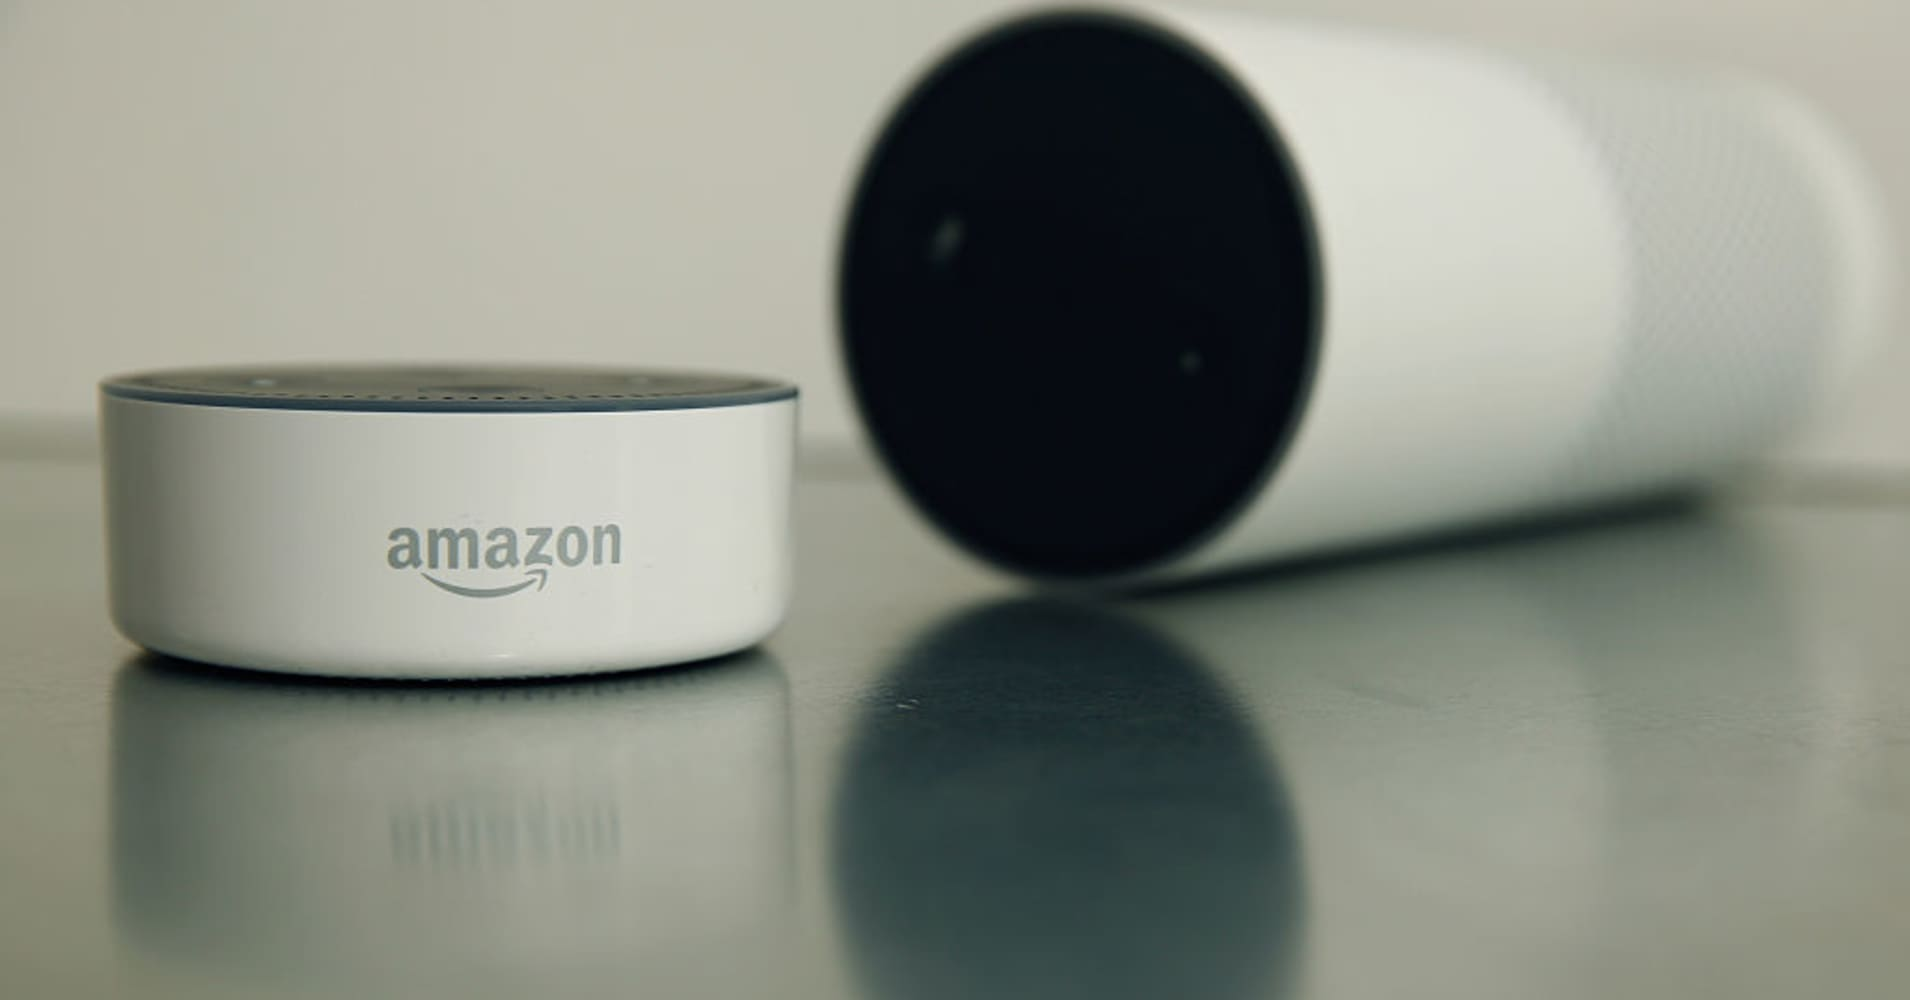 Amazon's Alexa stole the show in a bid to become the IoT operating system